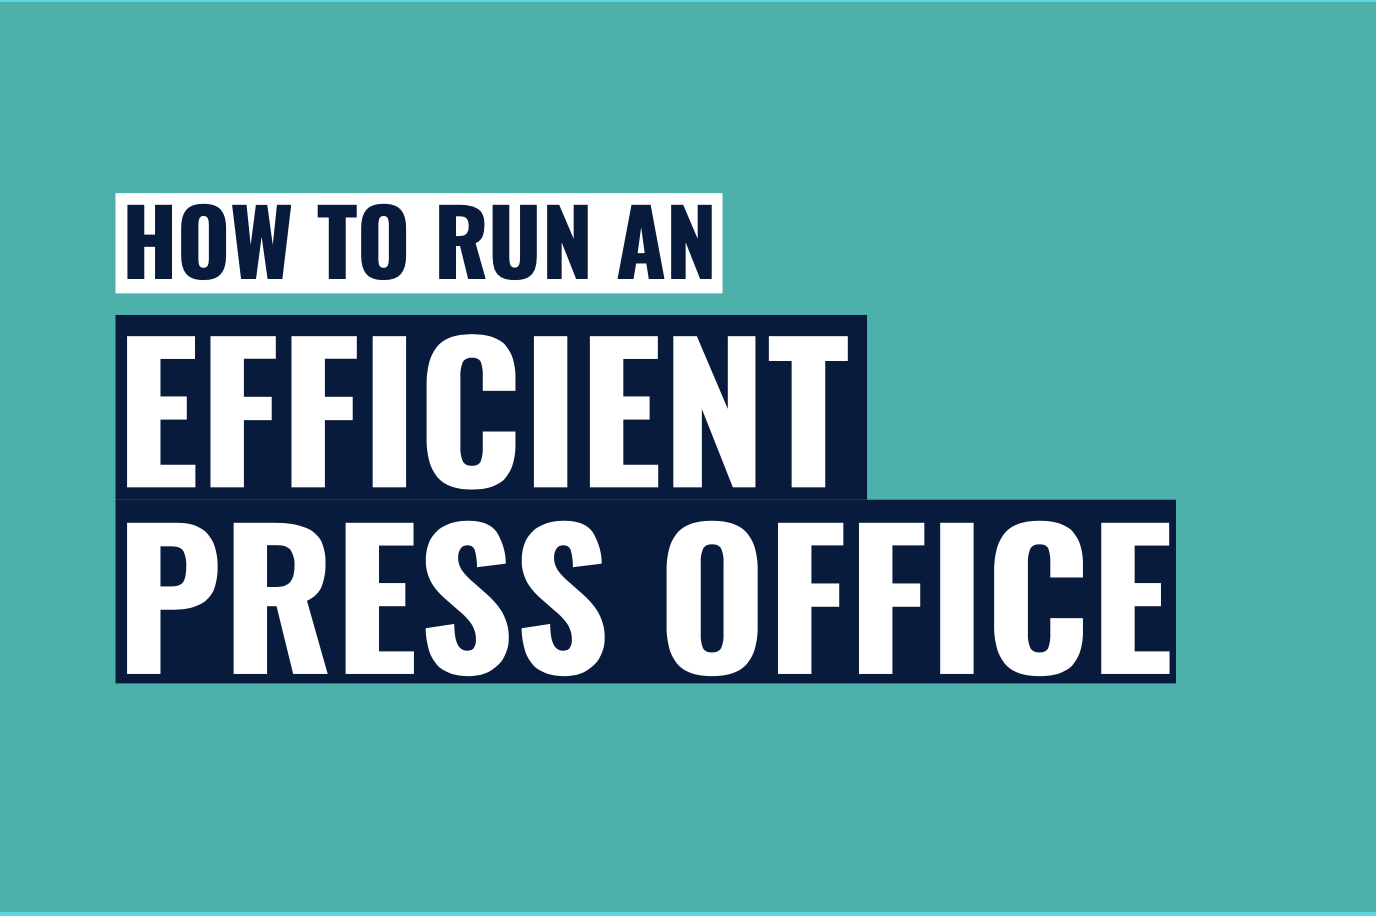 How to run an efficient press office